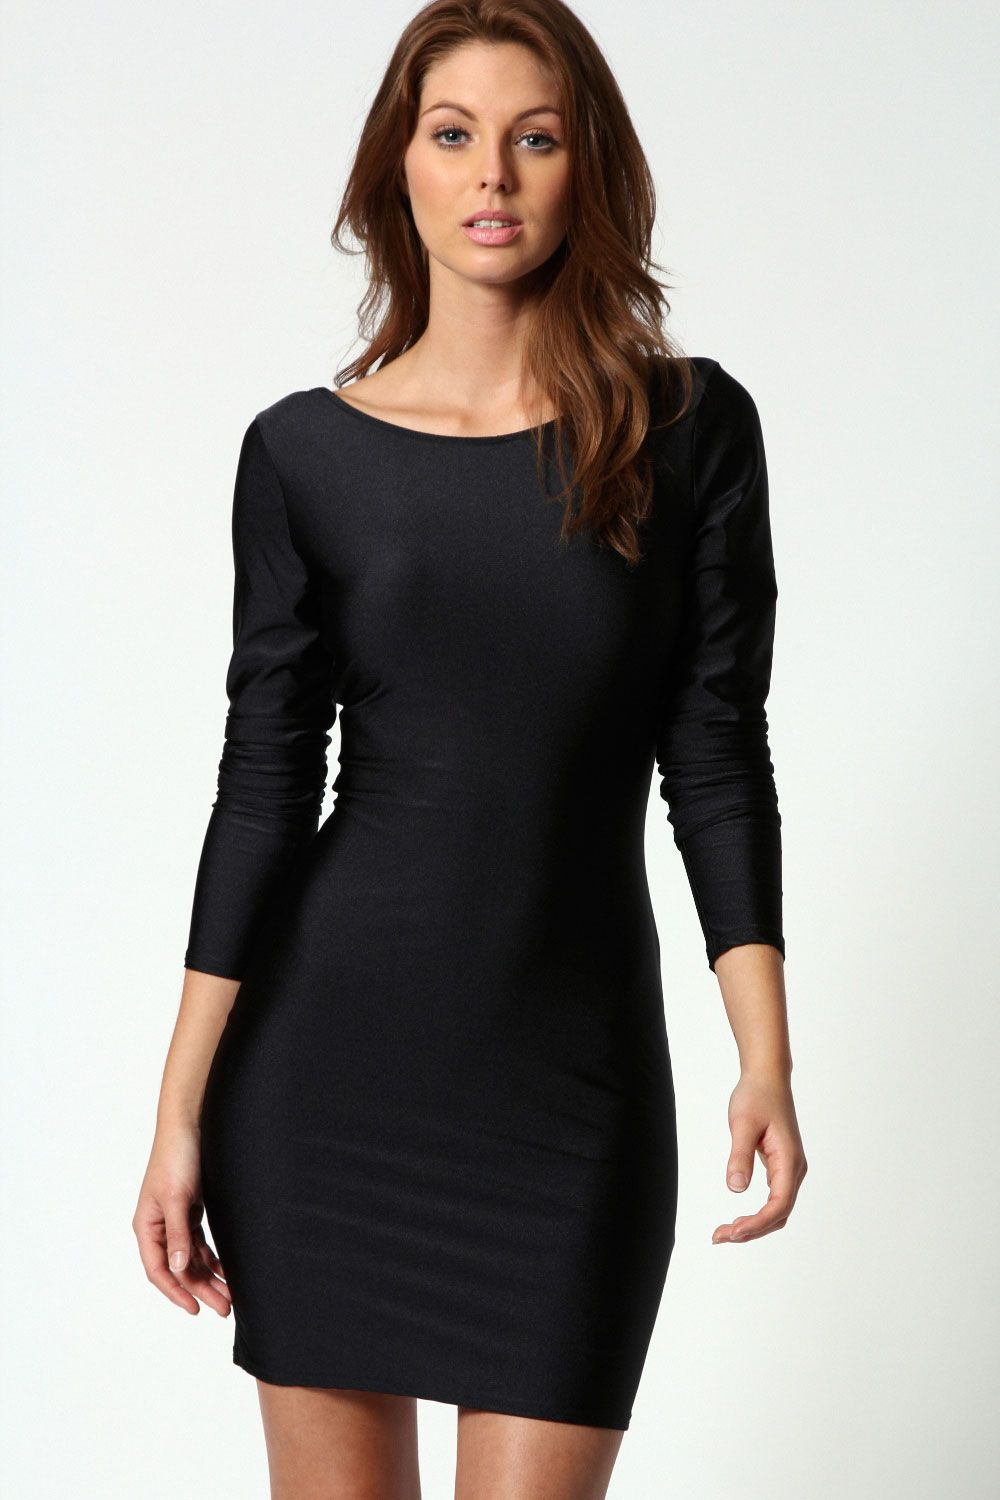 Bodycon black dress with sleeves